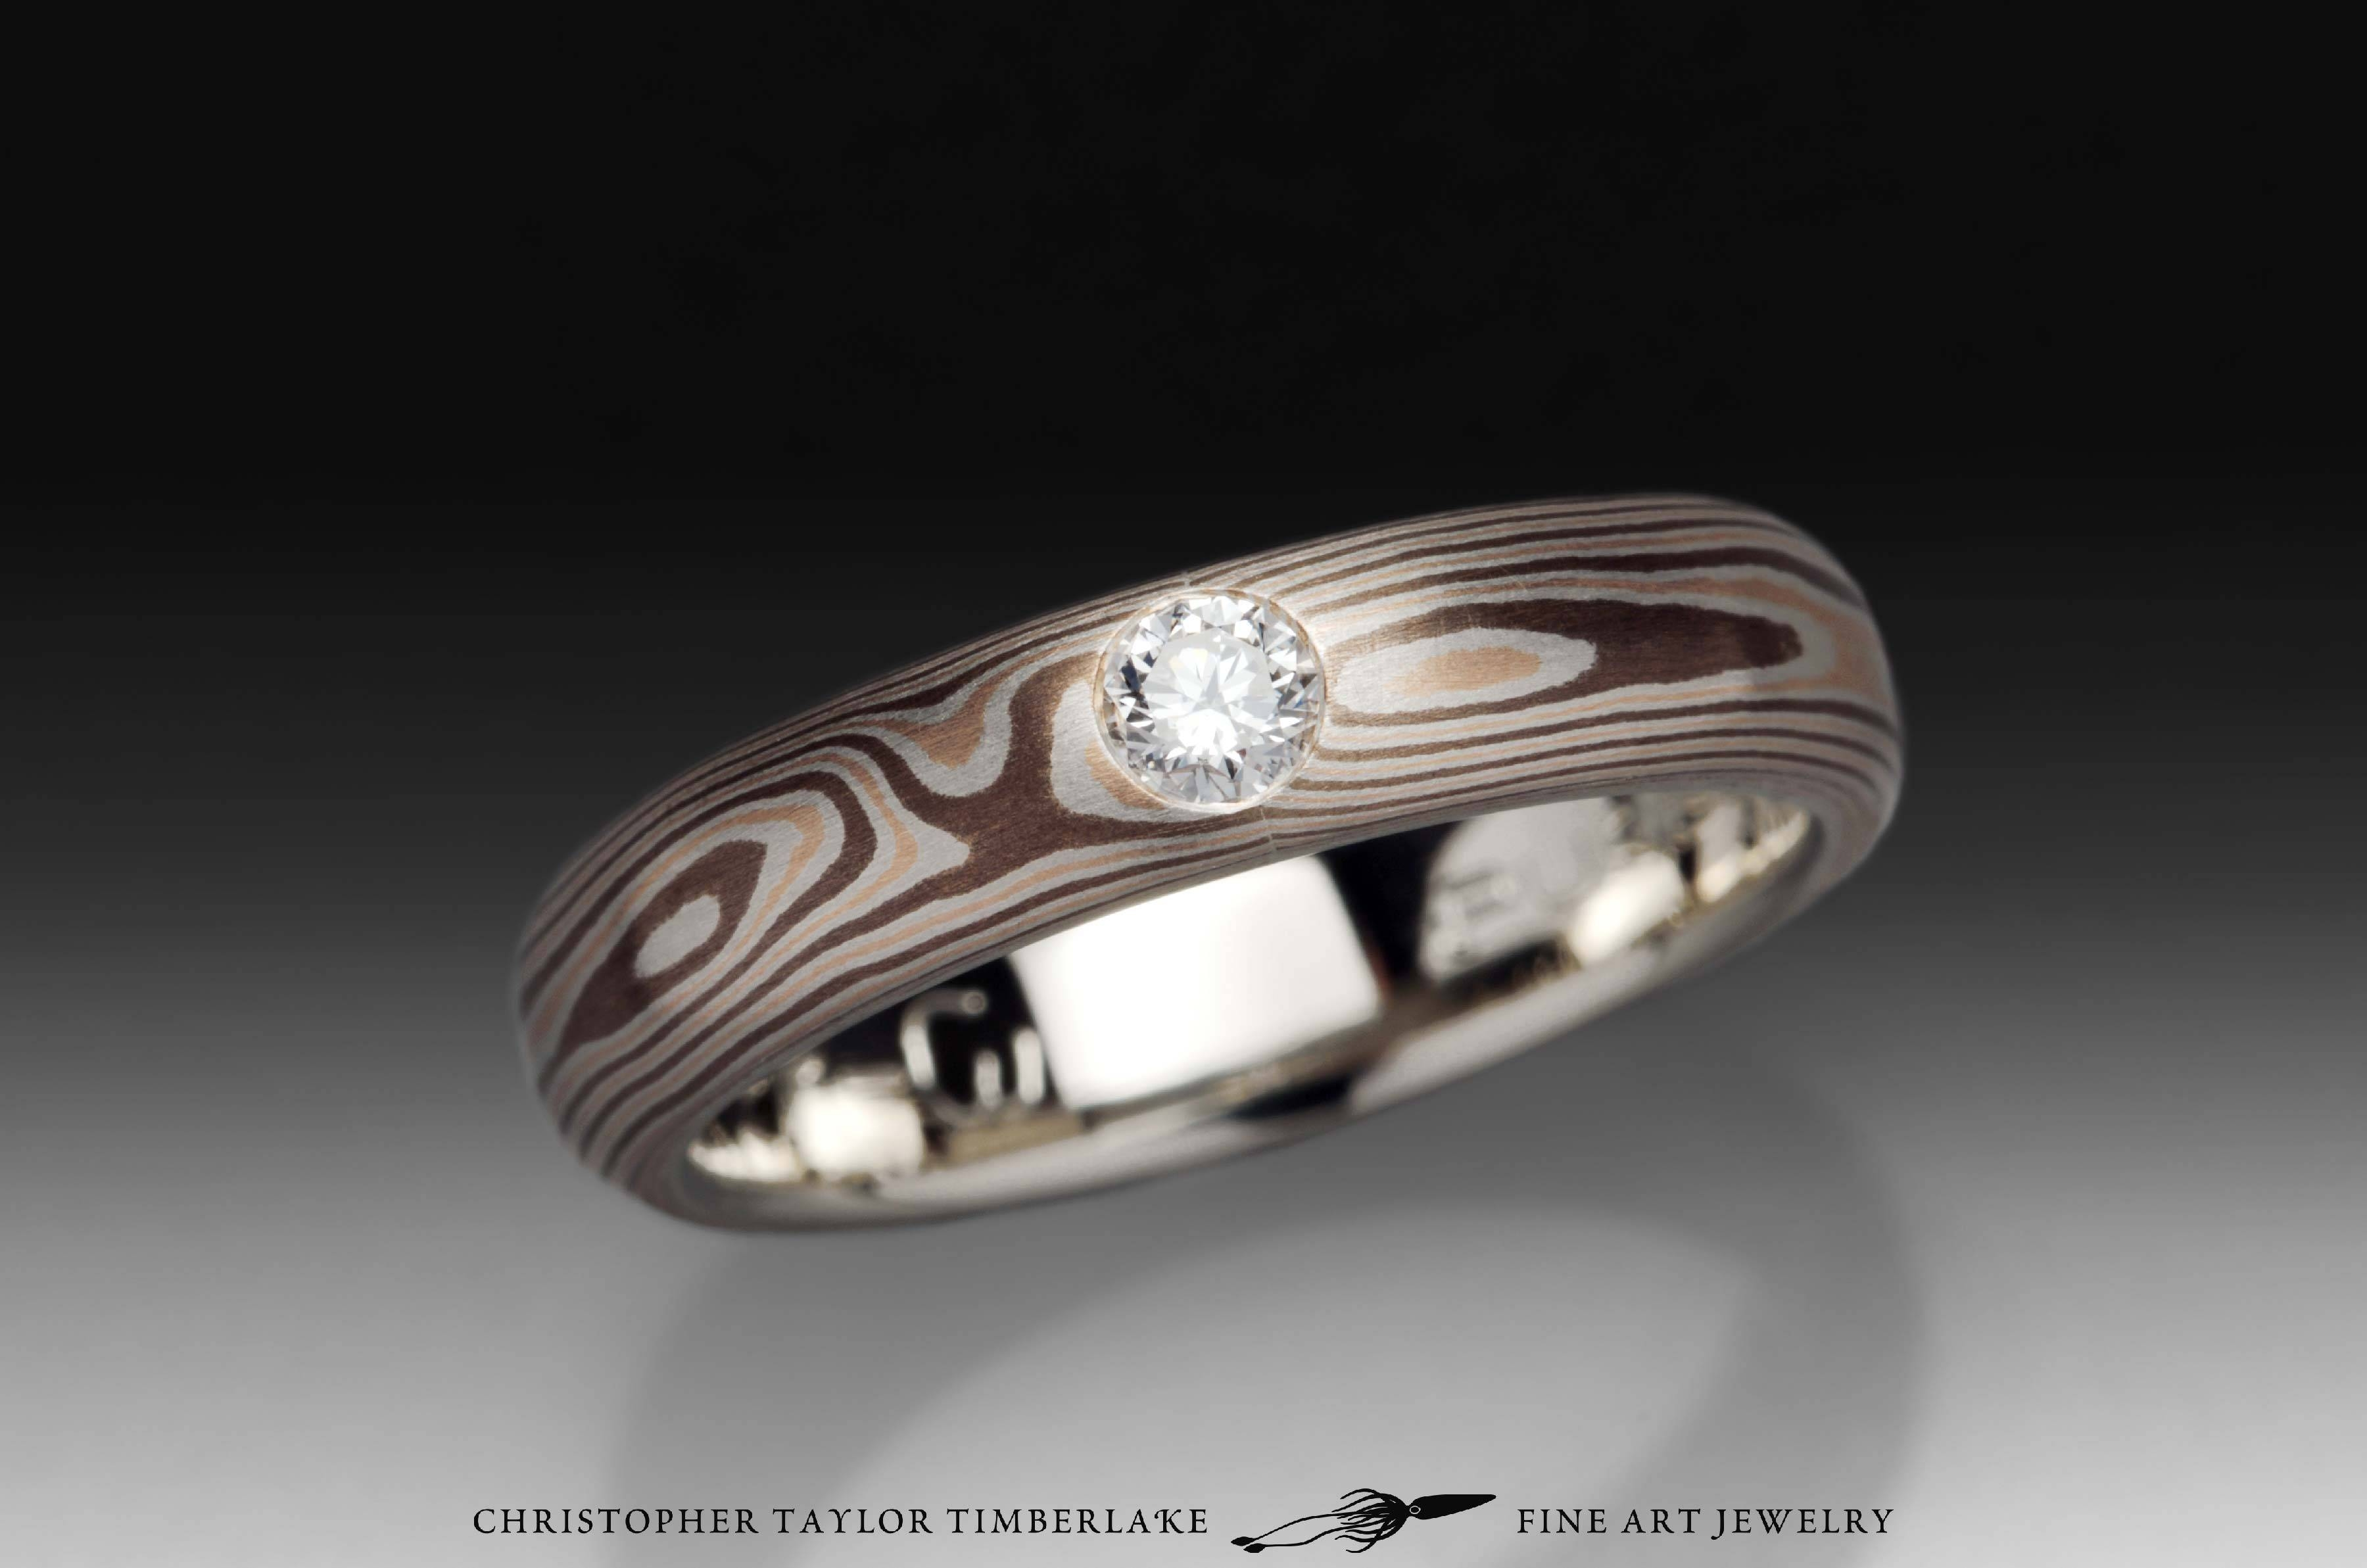 Mokumé Gane 14k Rose Gold, Palladium Sterling Silver, And Shakudo Intended For Mokume Gane Engagement Rings (View 5 of 15)